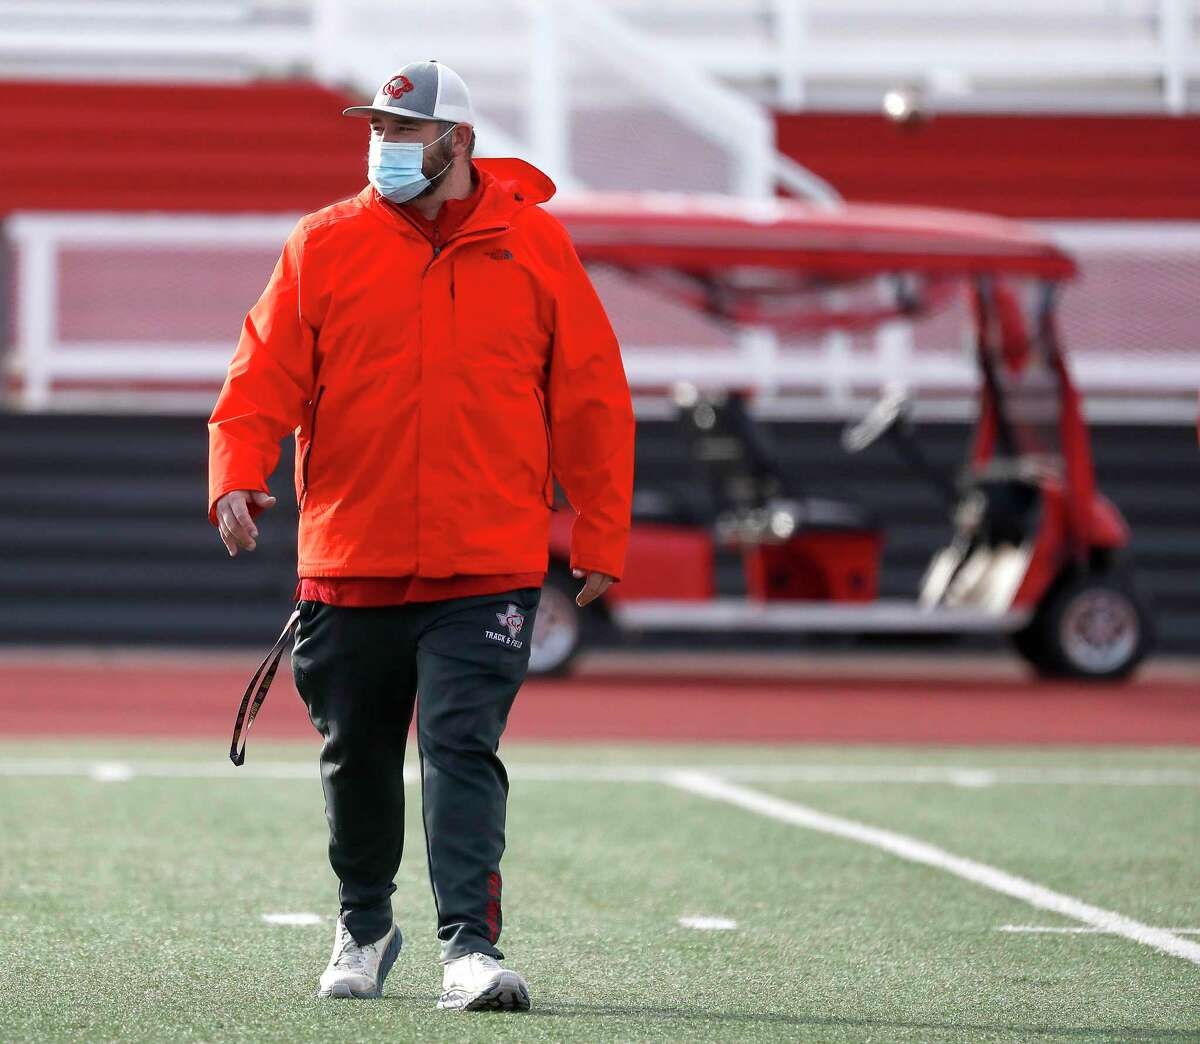 Crosby High School's head football coach, Jerry Prieto, during football practice at Cougar Stadium in Crosby, Tuesday, Jan. 12, 2021, as the team prepared to head to state.